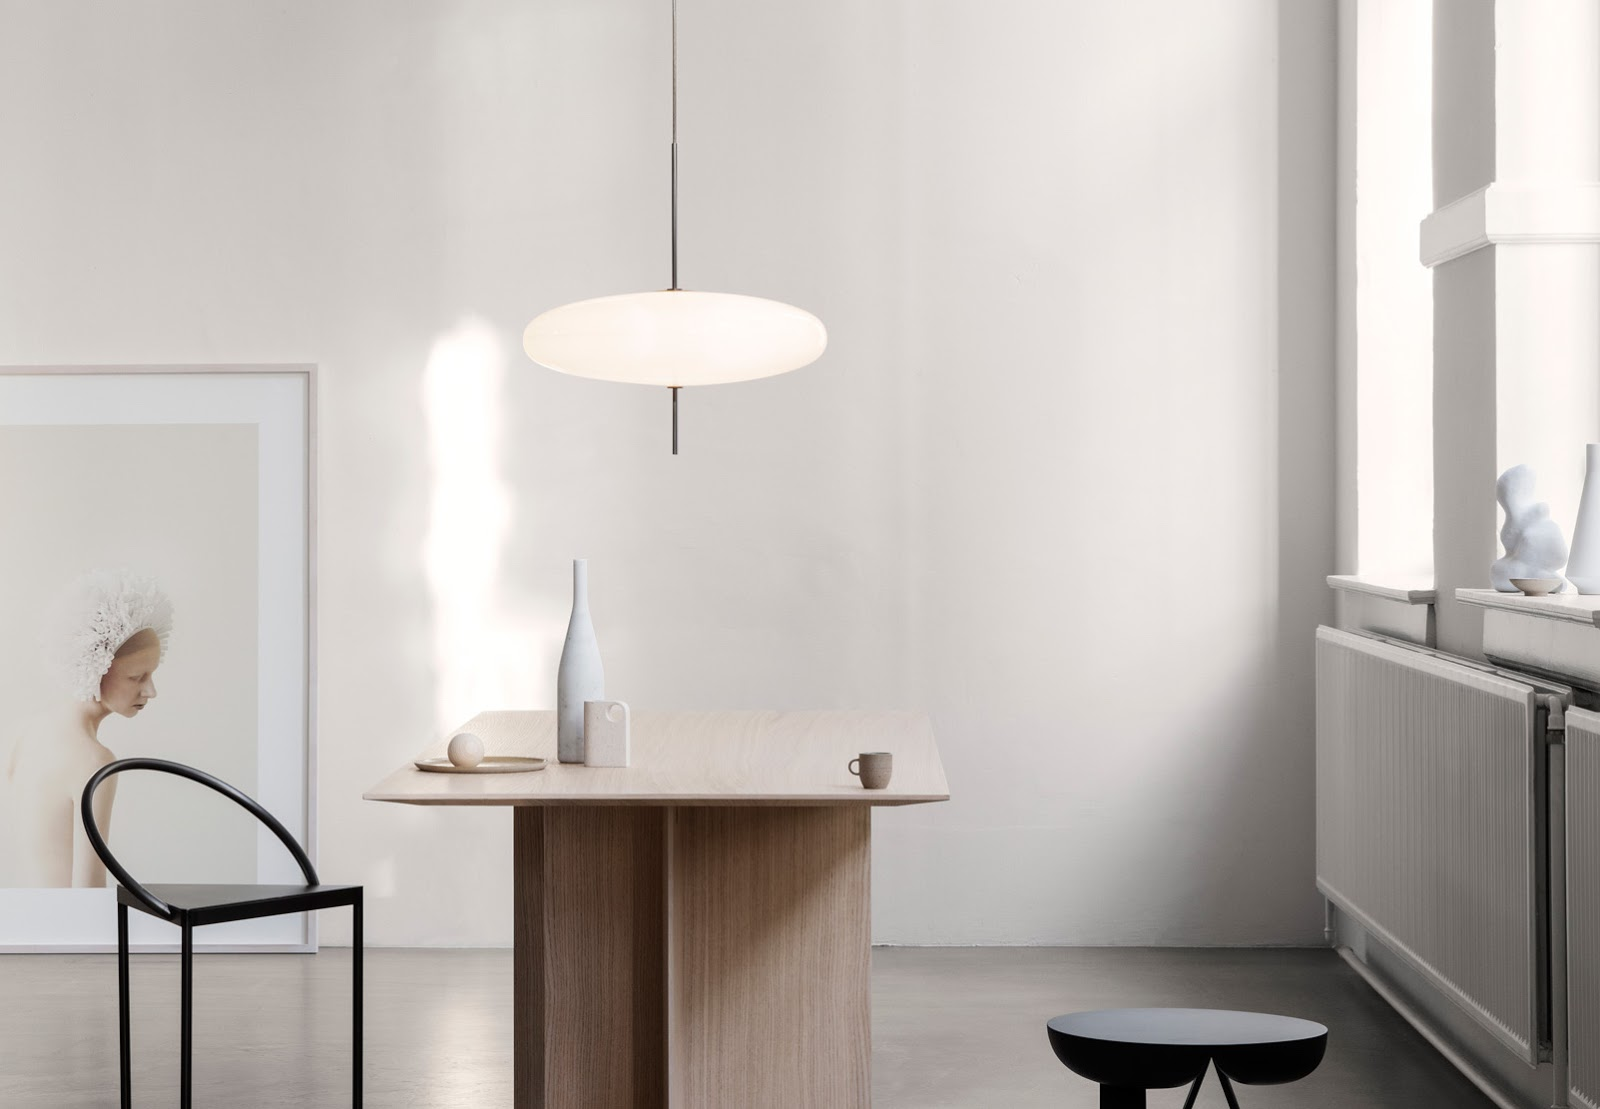 Focus on: Model 2065 lamp